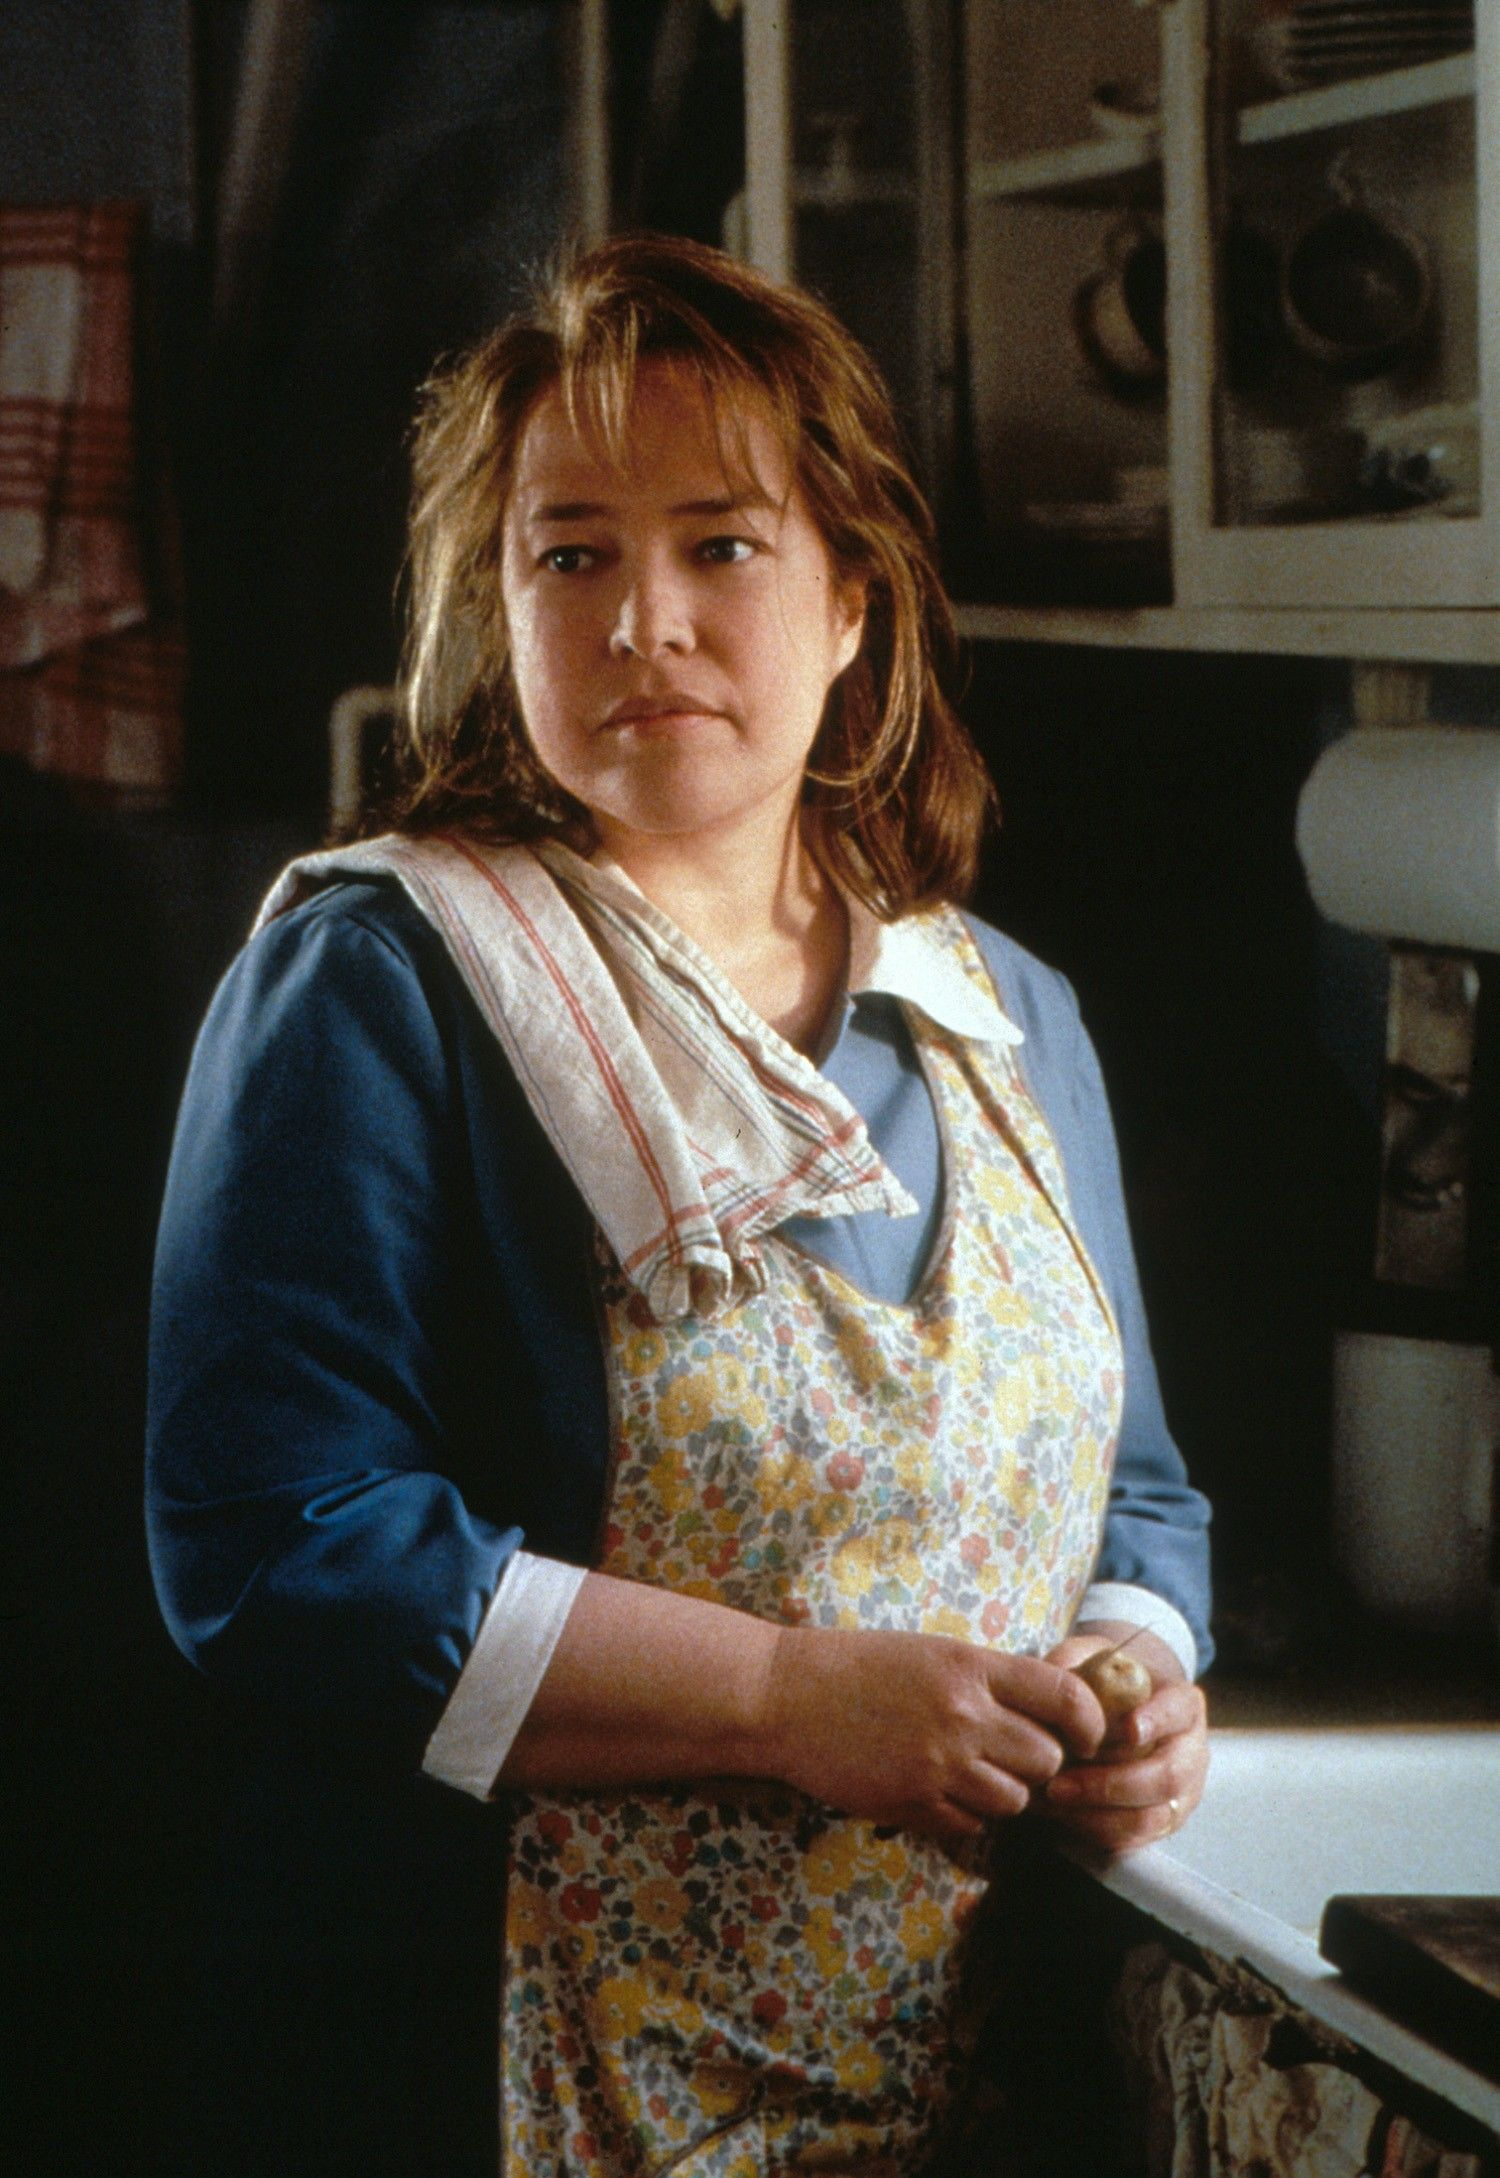 Kathy Bates Born June 28 1948 Is An American Actress She Began Her Career On The Stage And Was Nominat Dolores Claiborne Stephen King Movies Stephen King